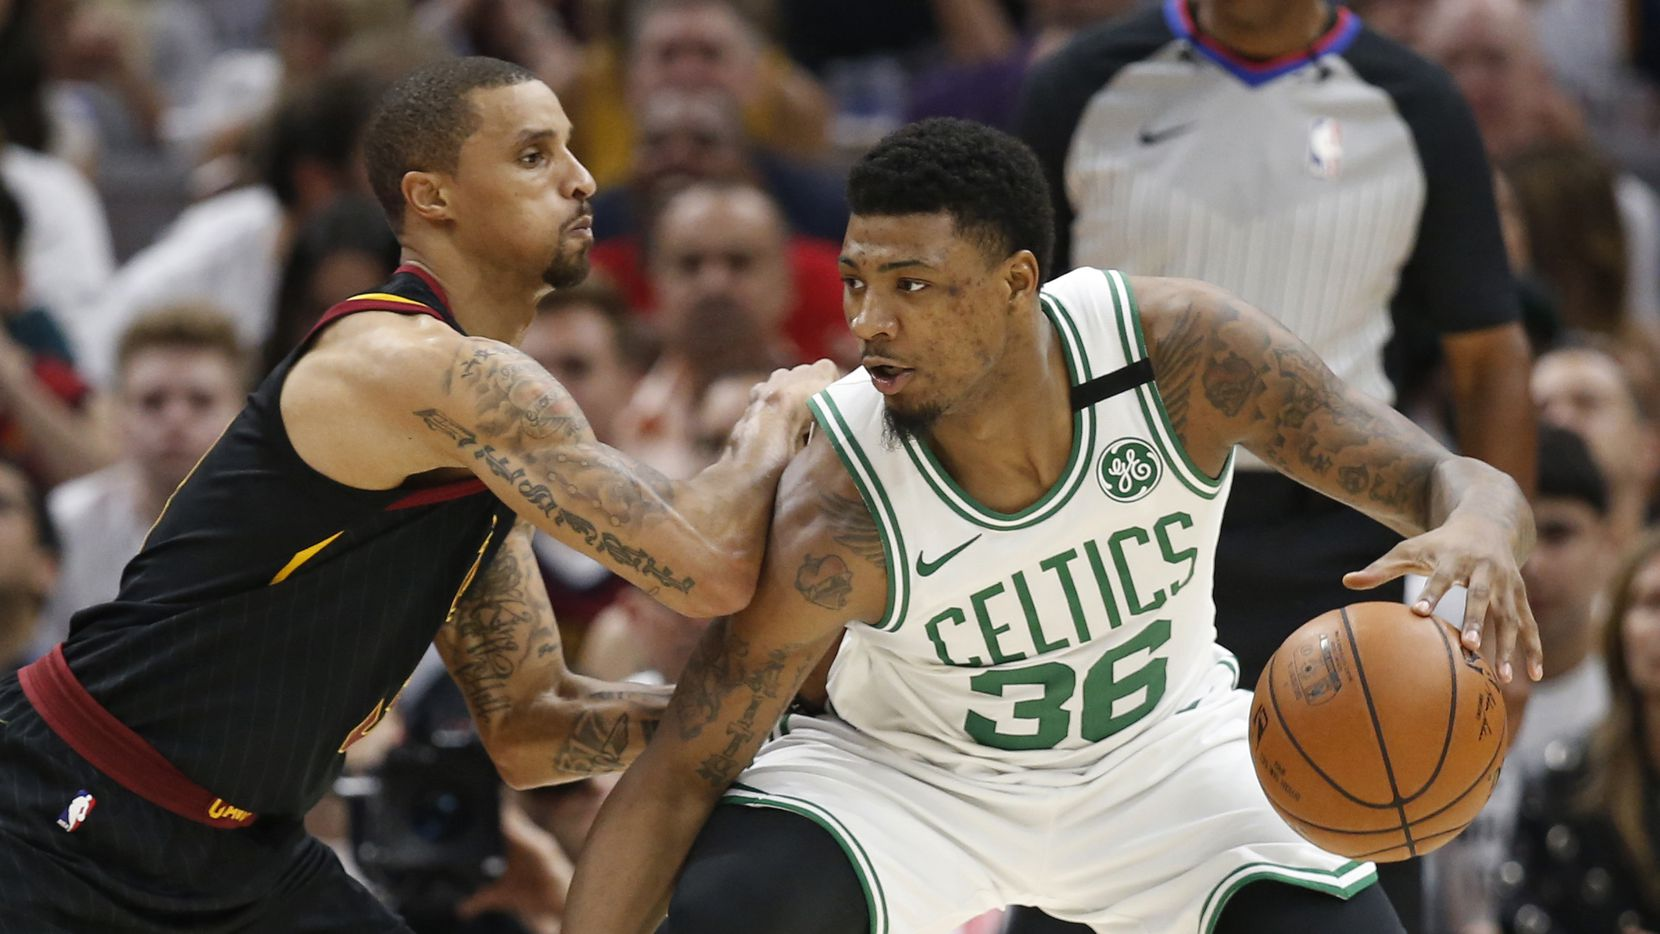 Boston Celtics' Marcus Smart (36) drives past Cleveland Cavaliers' George Hill (3) during the first half of Game 6 of the NBA basketball Eastern Conference finals Friday, May 25, 2018, in Cleveland.